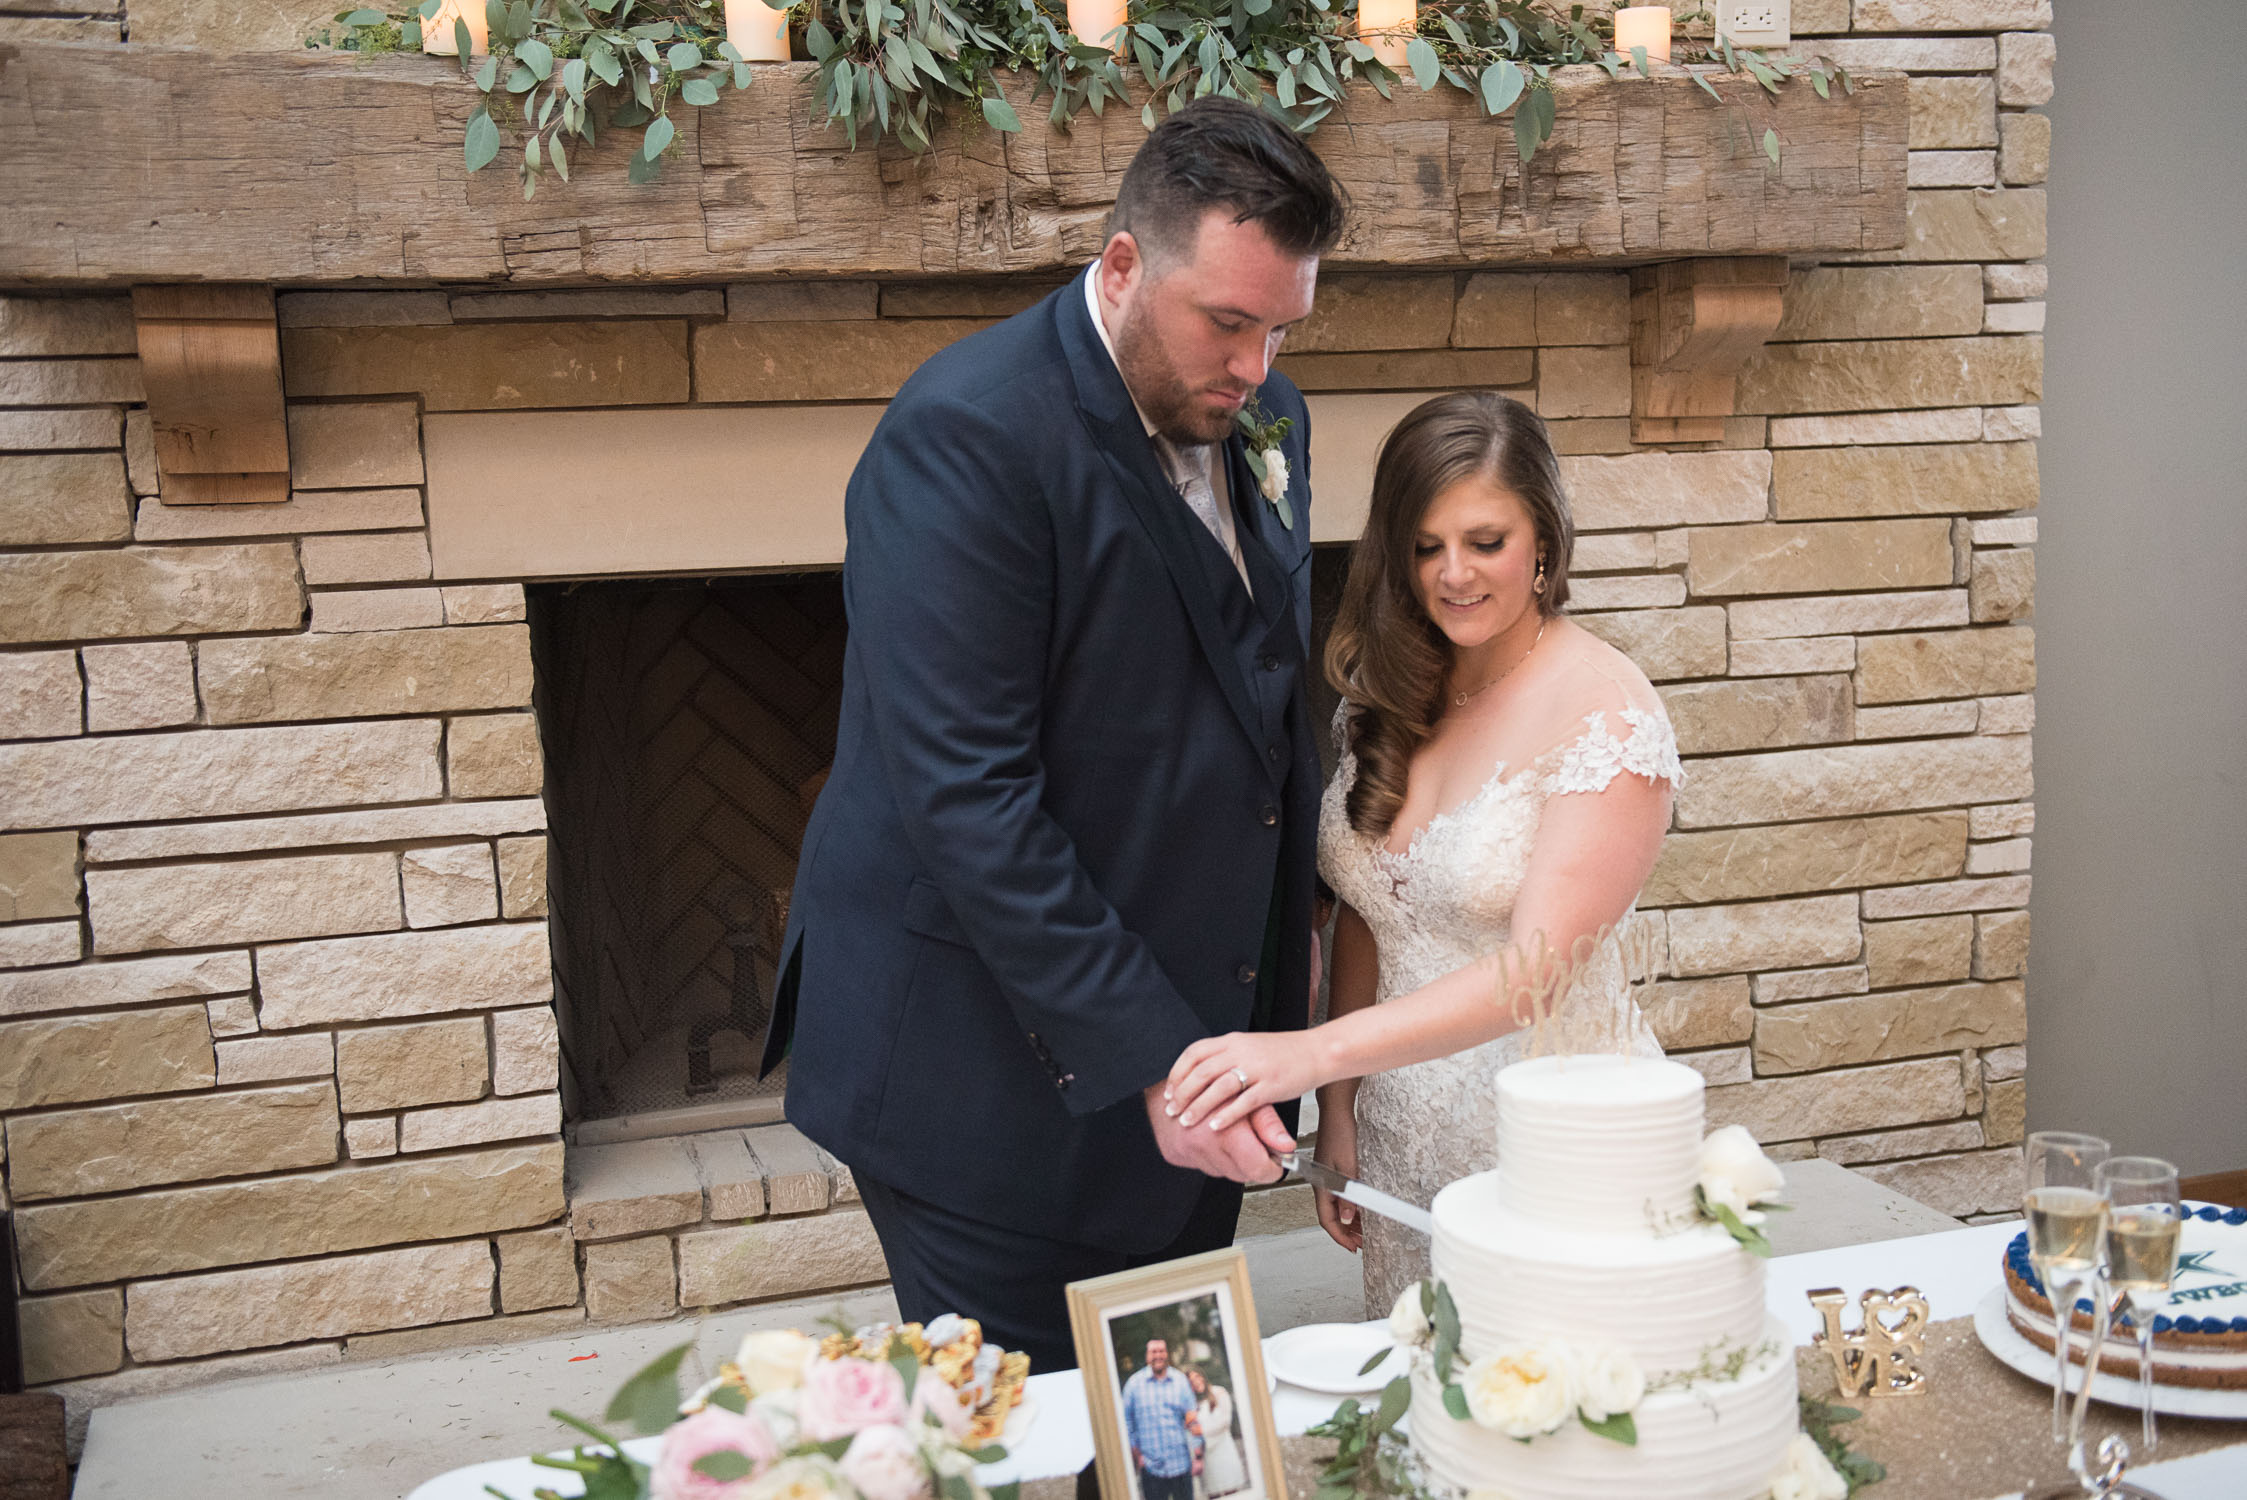 Hinton Wedding at Canyonwood Ridge Dripping Springs Texas Wedding Photography-169.jpg